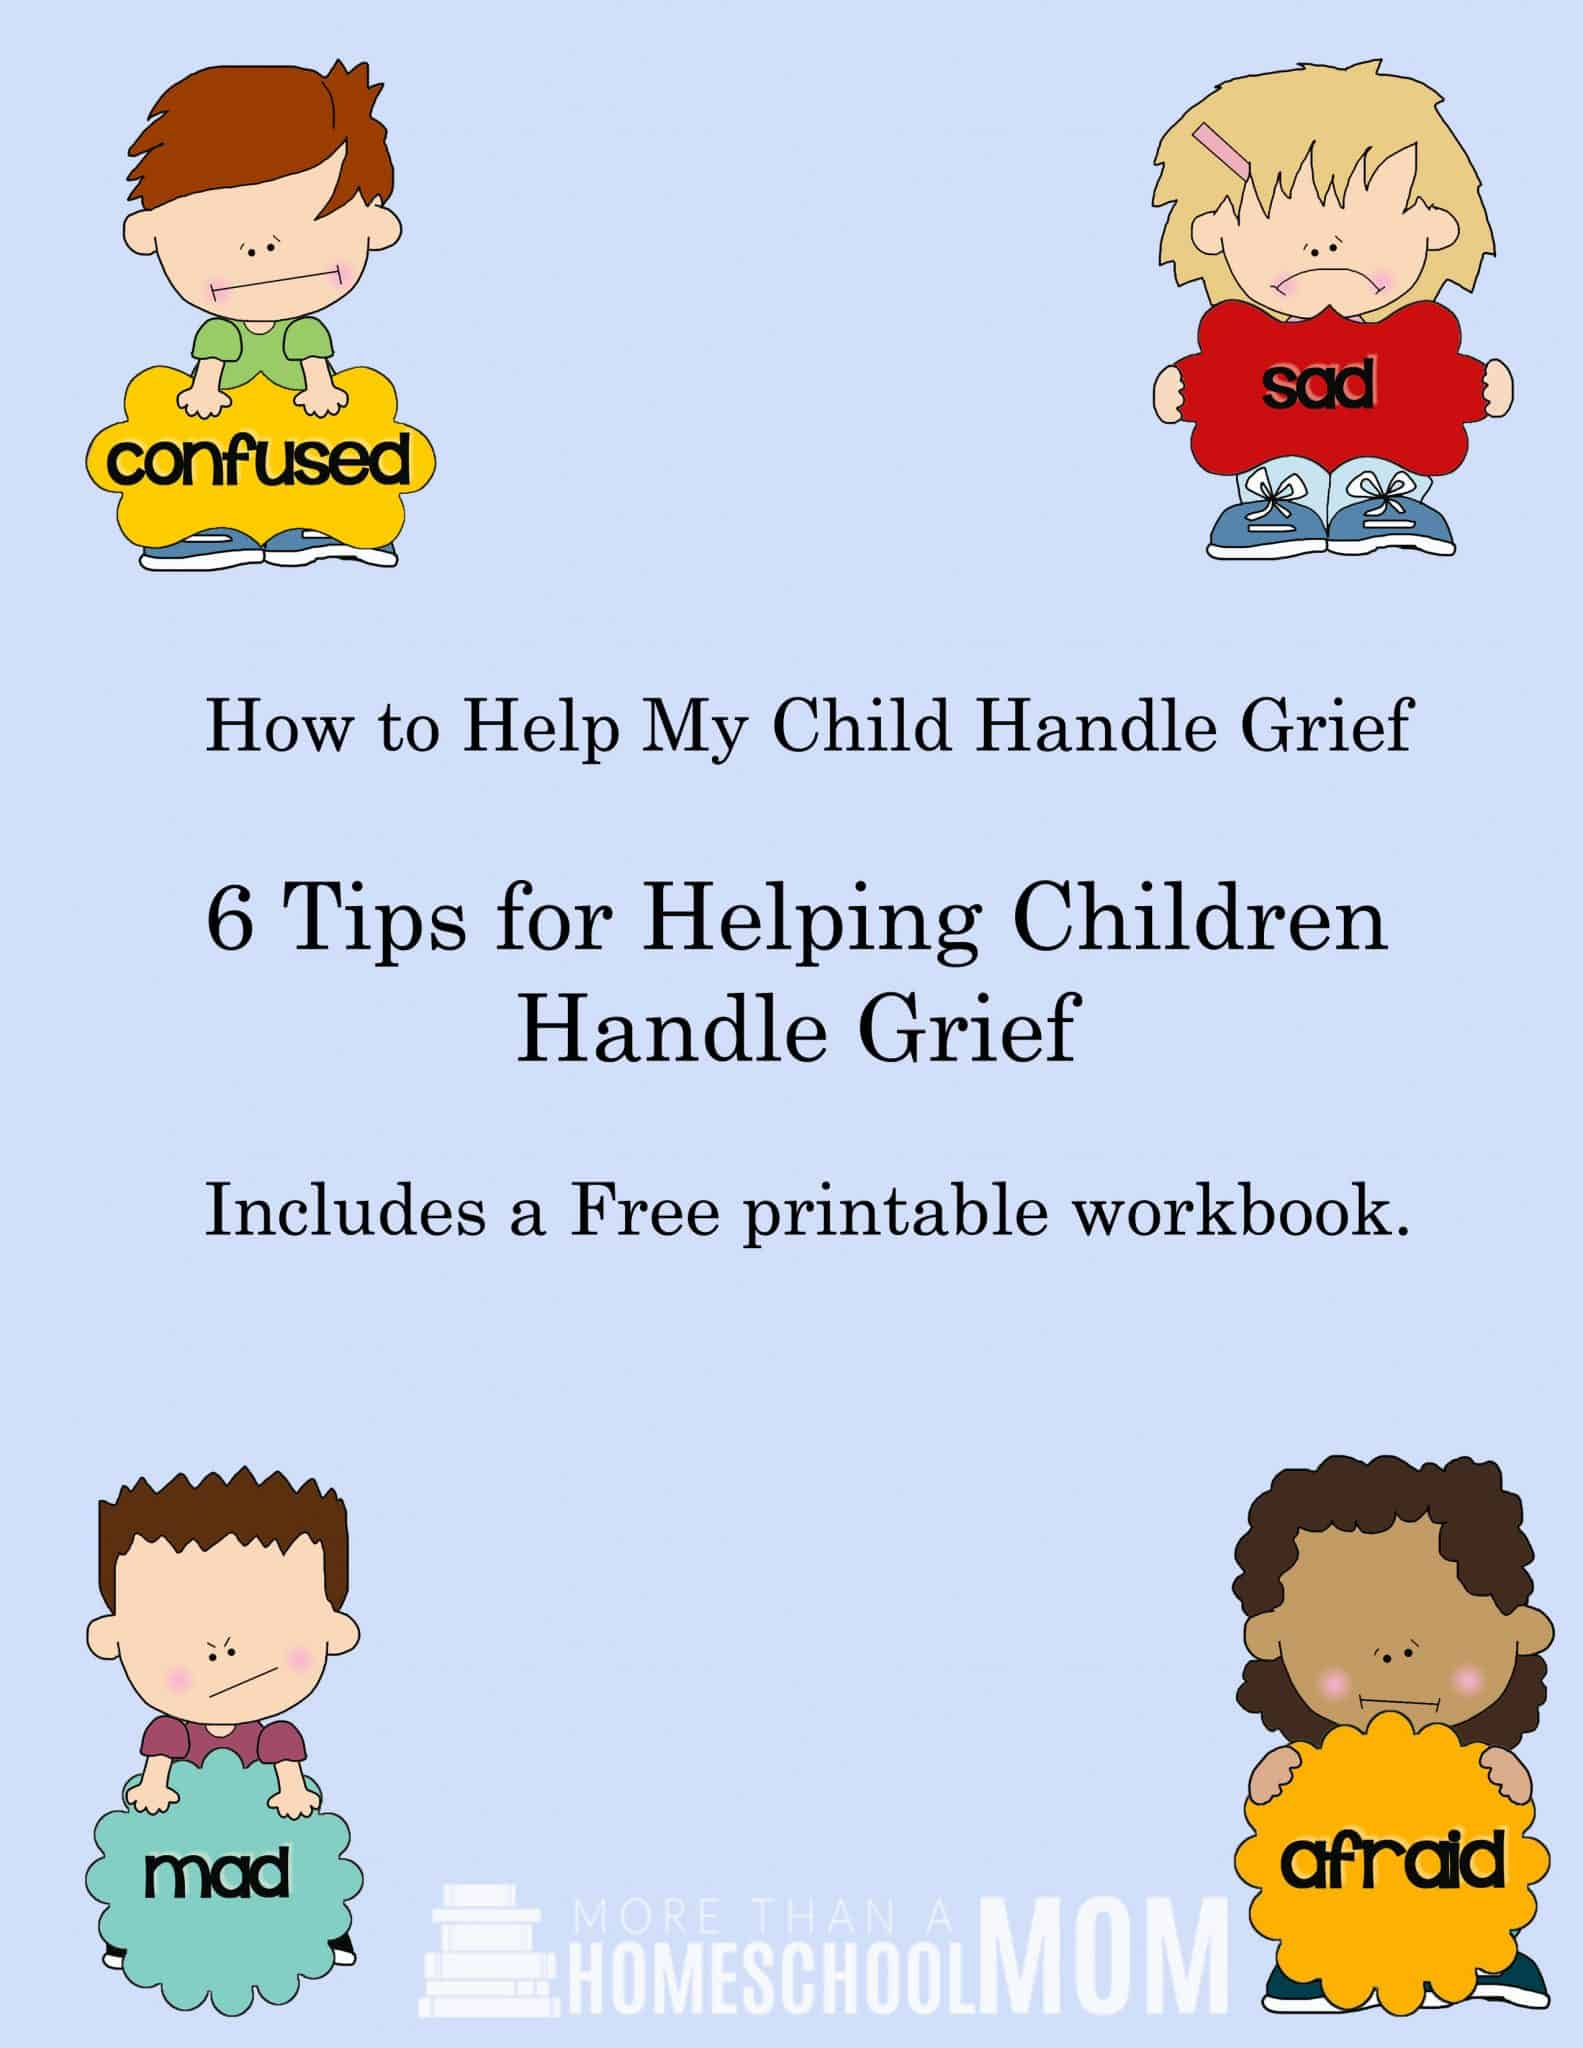 How to Help My Child Handle Grief - Includes Free Printable workbook for children dealing with grief. - #parenting #education #grief #freeprintable #feelings #parent #parentingtips